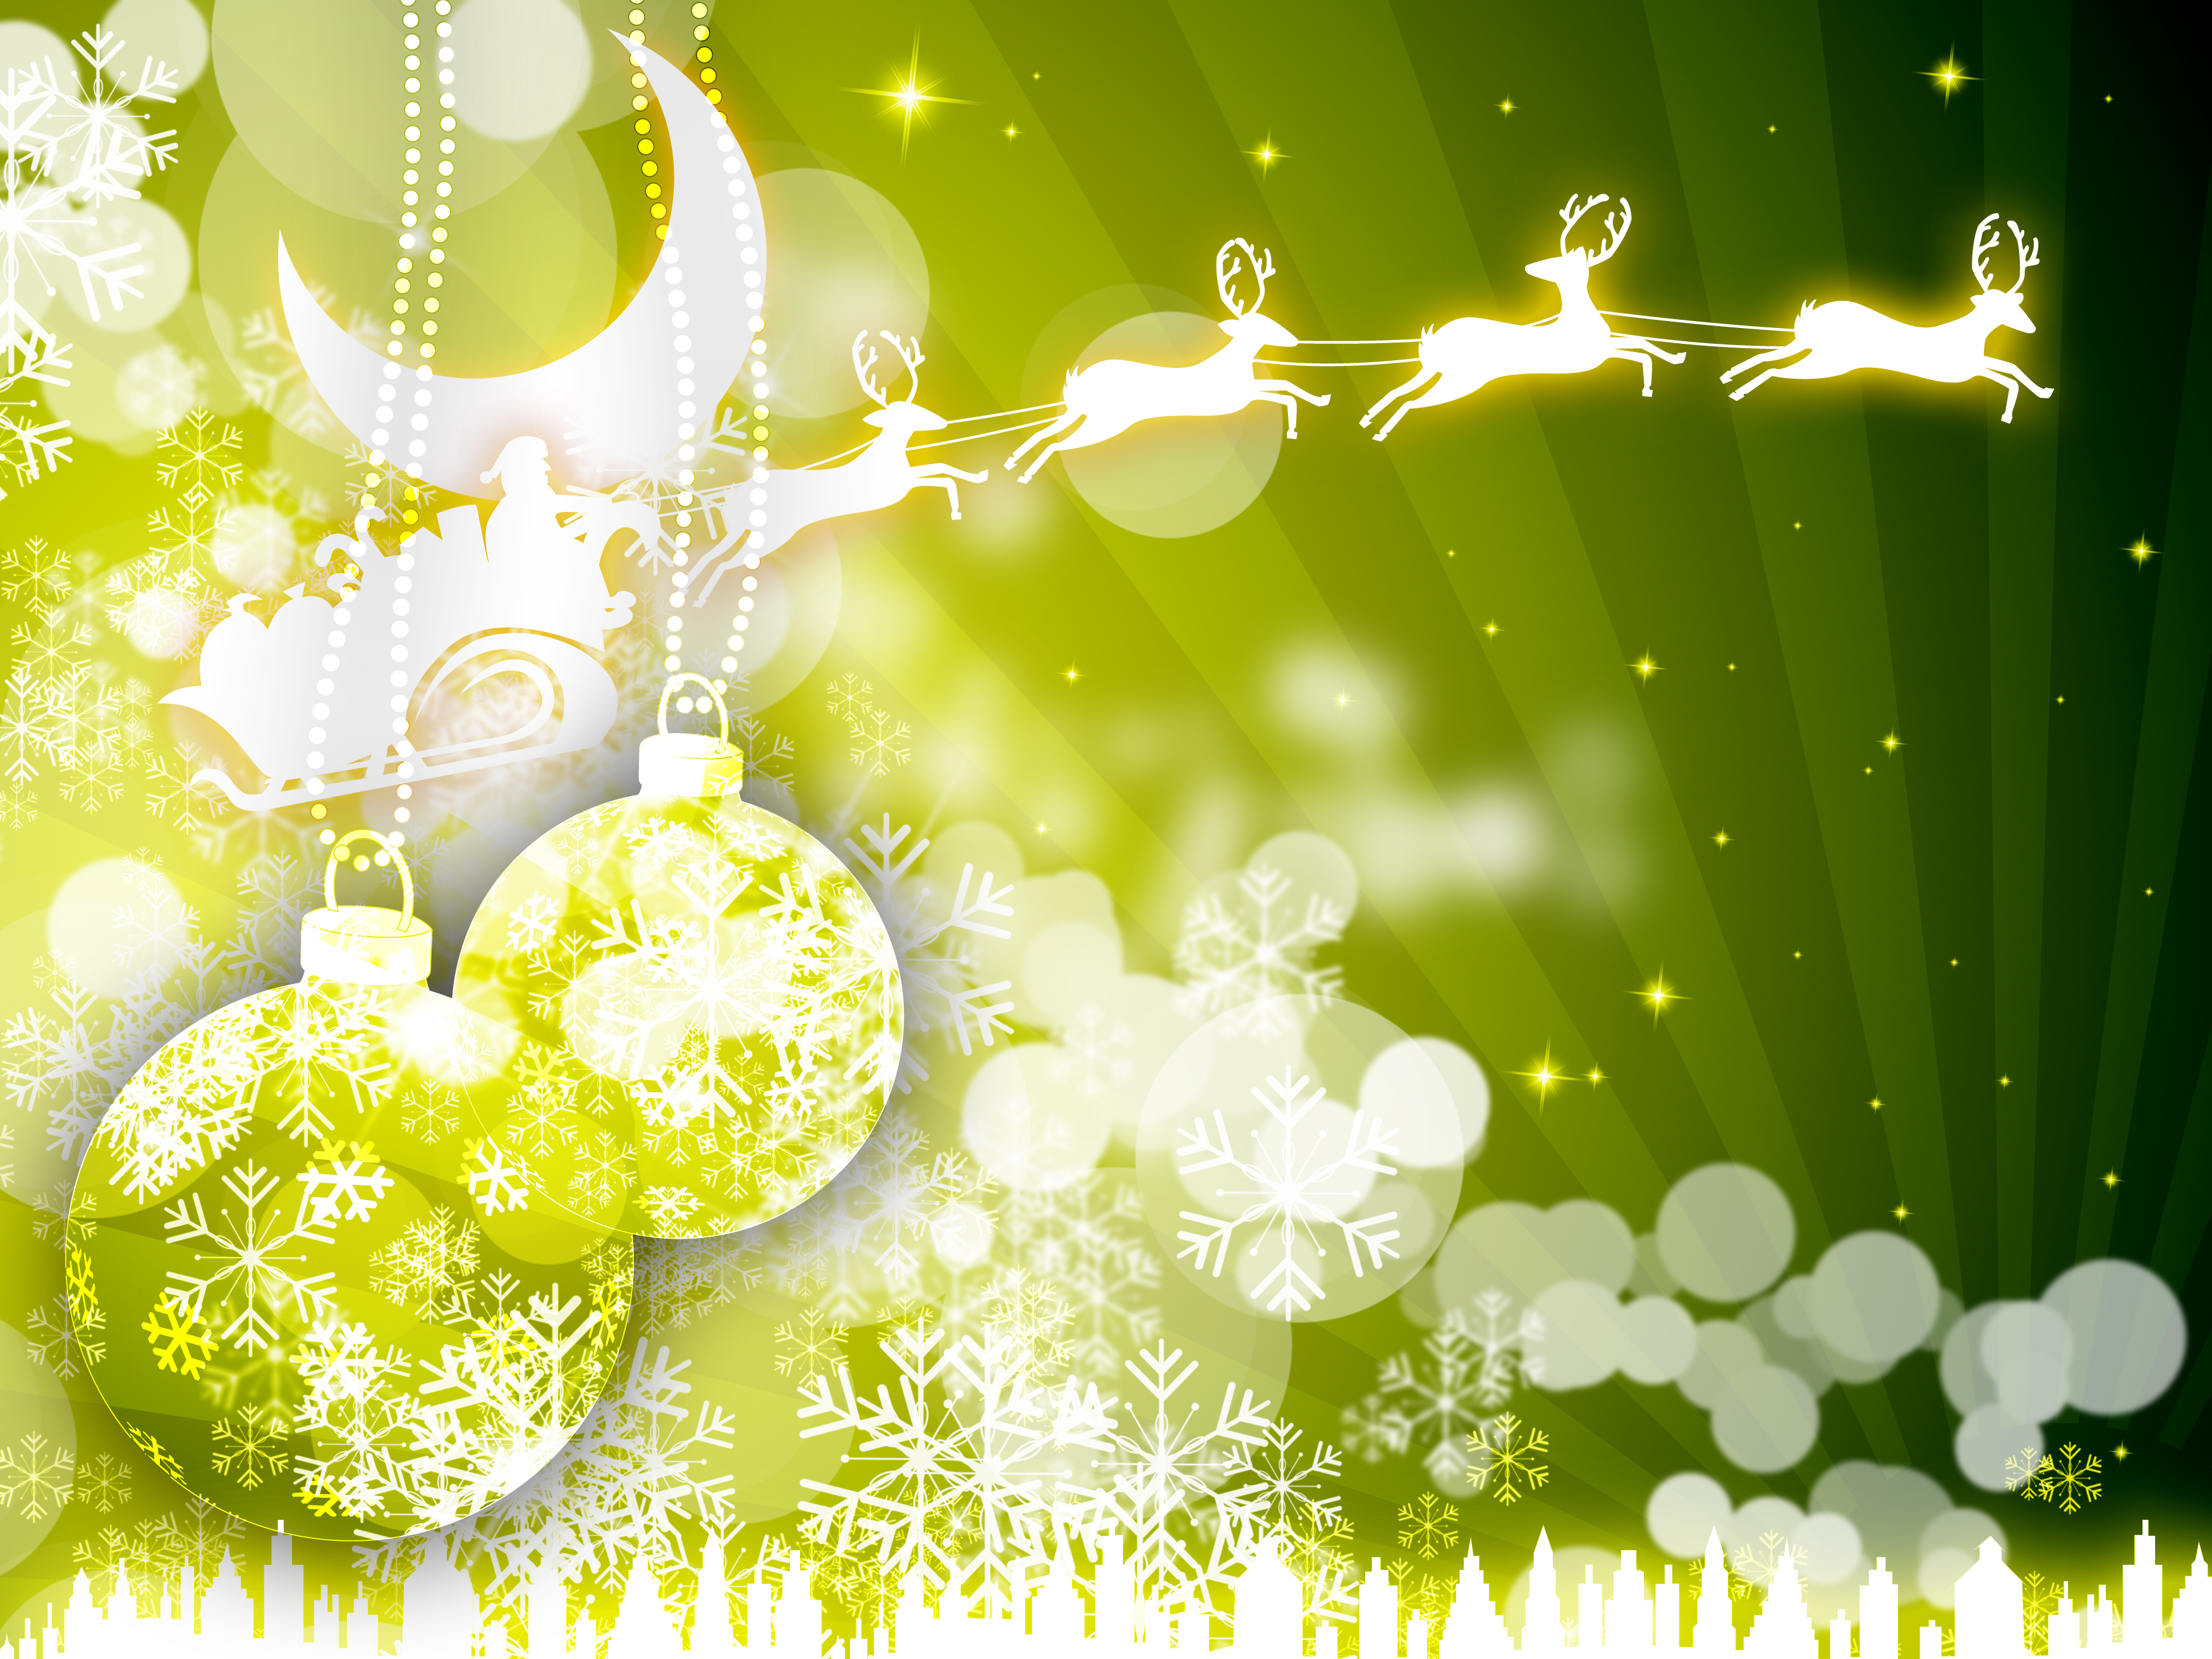 Christmas Background Images For Photoshop.Christmas Backgrounds Part 6 Free Downloads And Add Ons